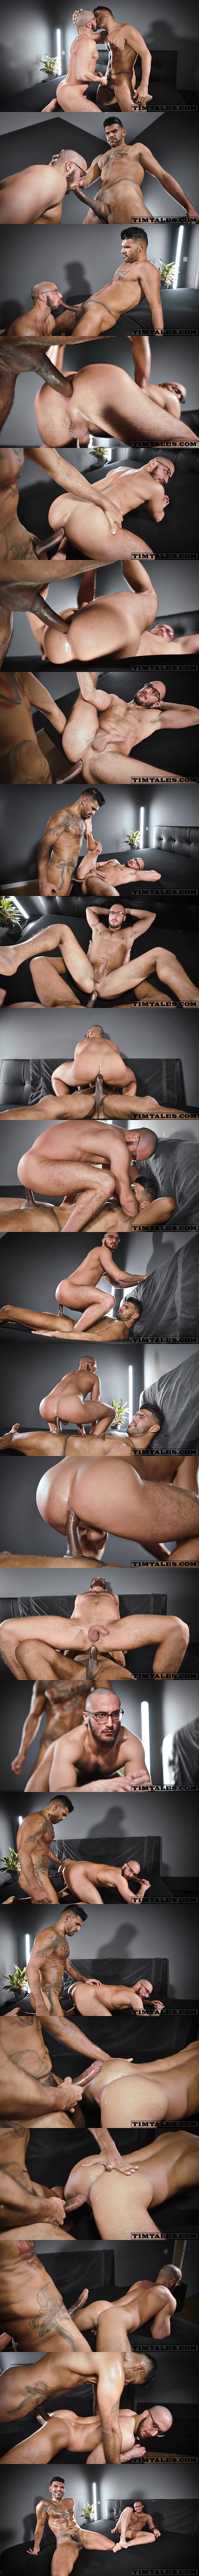 Timtales - hung Brazilian alpha top Leon (aka Leonxxl22) barebacks power bottom Saverio's bubble ass in different positions before he seeds Saverio's wrecked hole 02